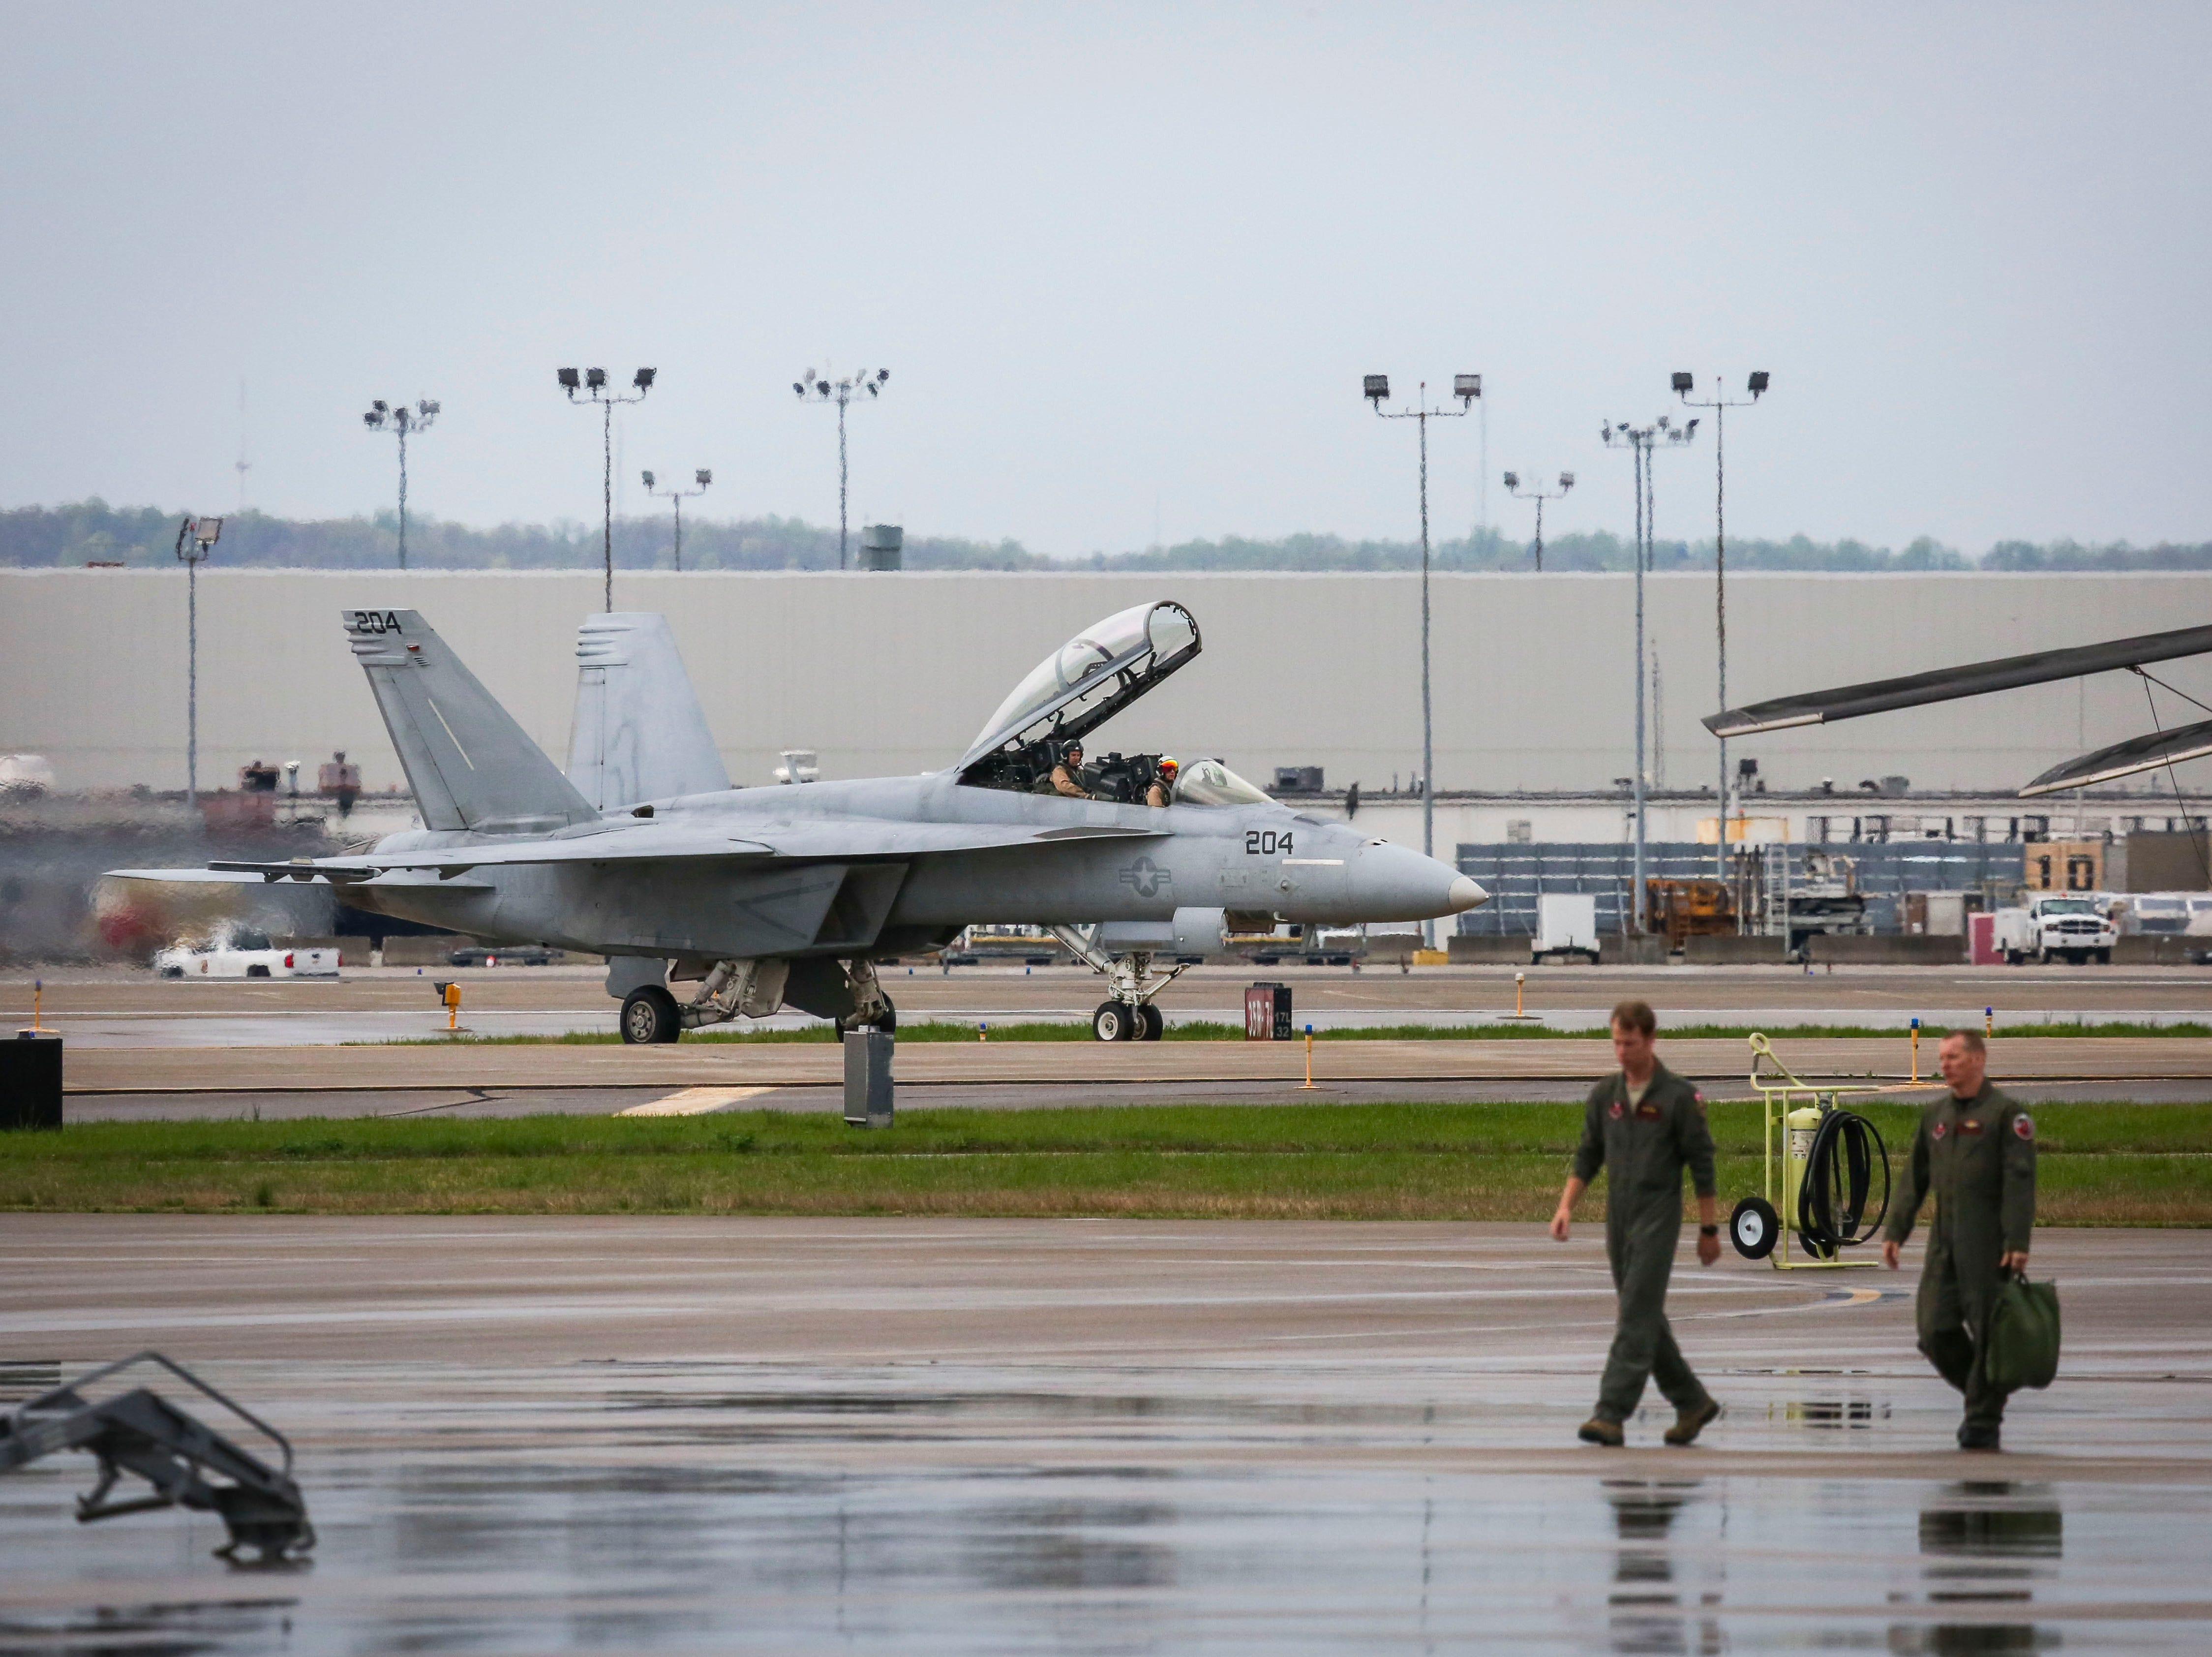 A F/A-18 Hornet, a twin-engine, supersonic combat jet, taxis on the runway of the Kentucky Air National Guard ahead of practice for Thunder Over Louisville in Louisville, Ky. on Friday, April 12, 2019.